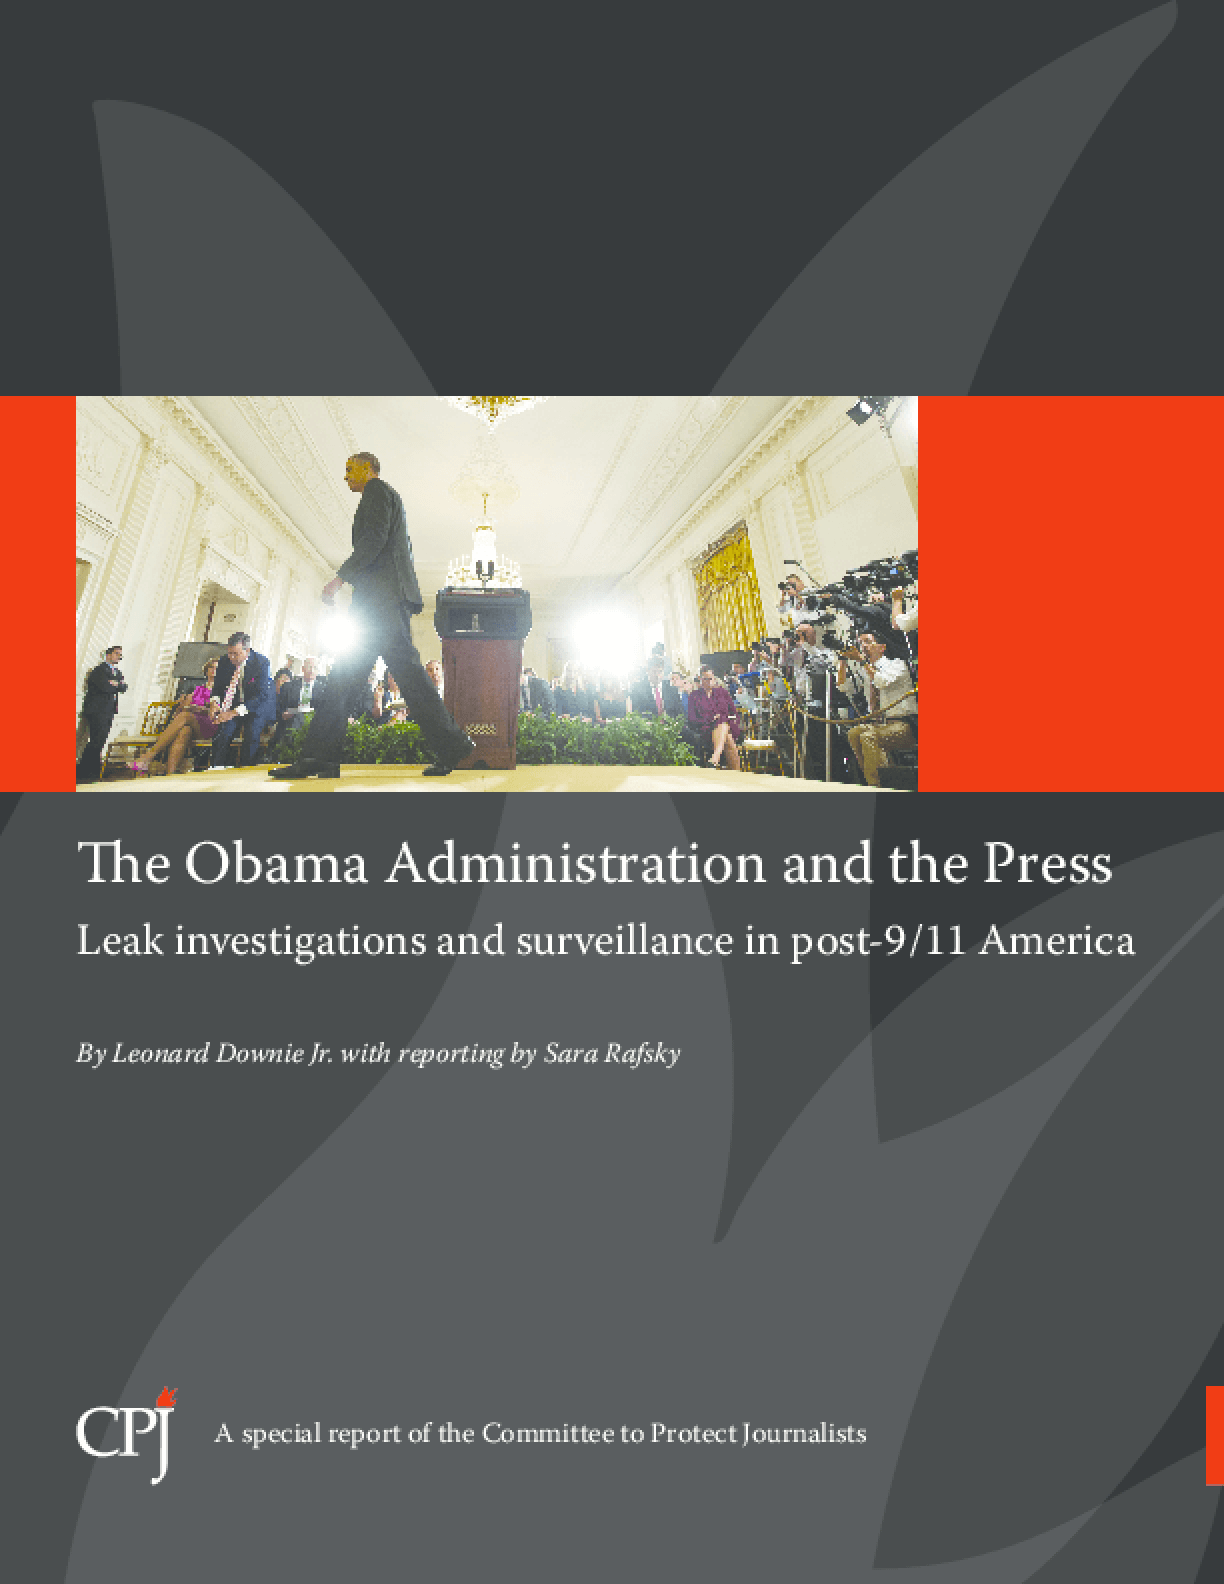 The Obama Administration and the Press: Leak Investigations and Surveillance in Post-9/11 America